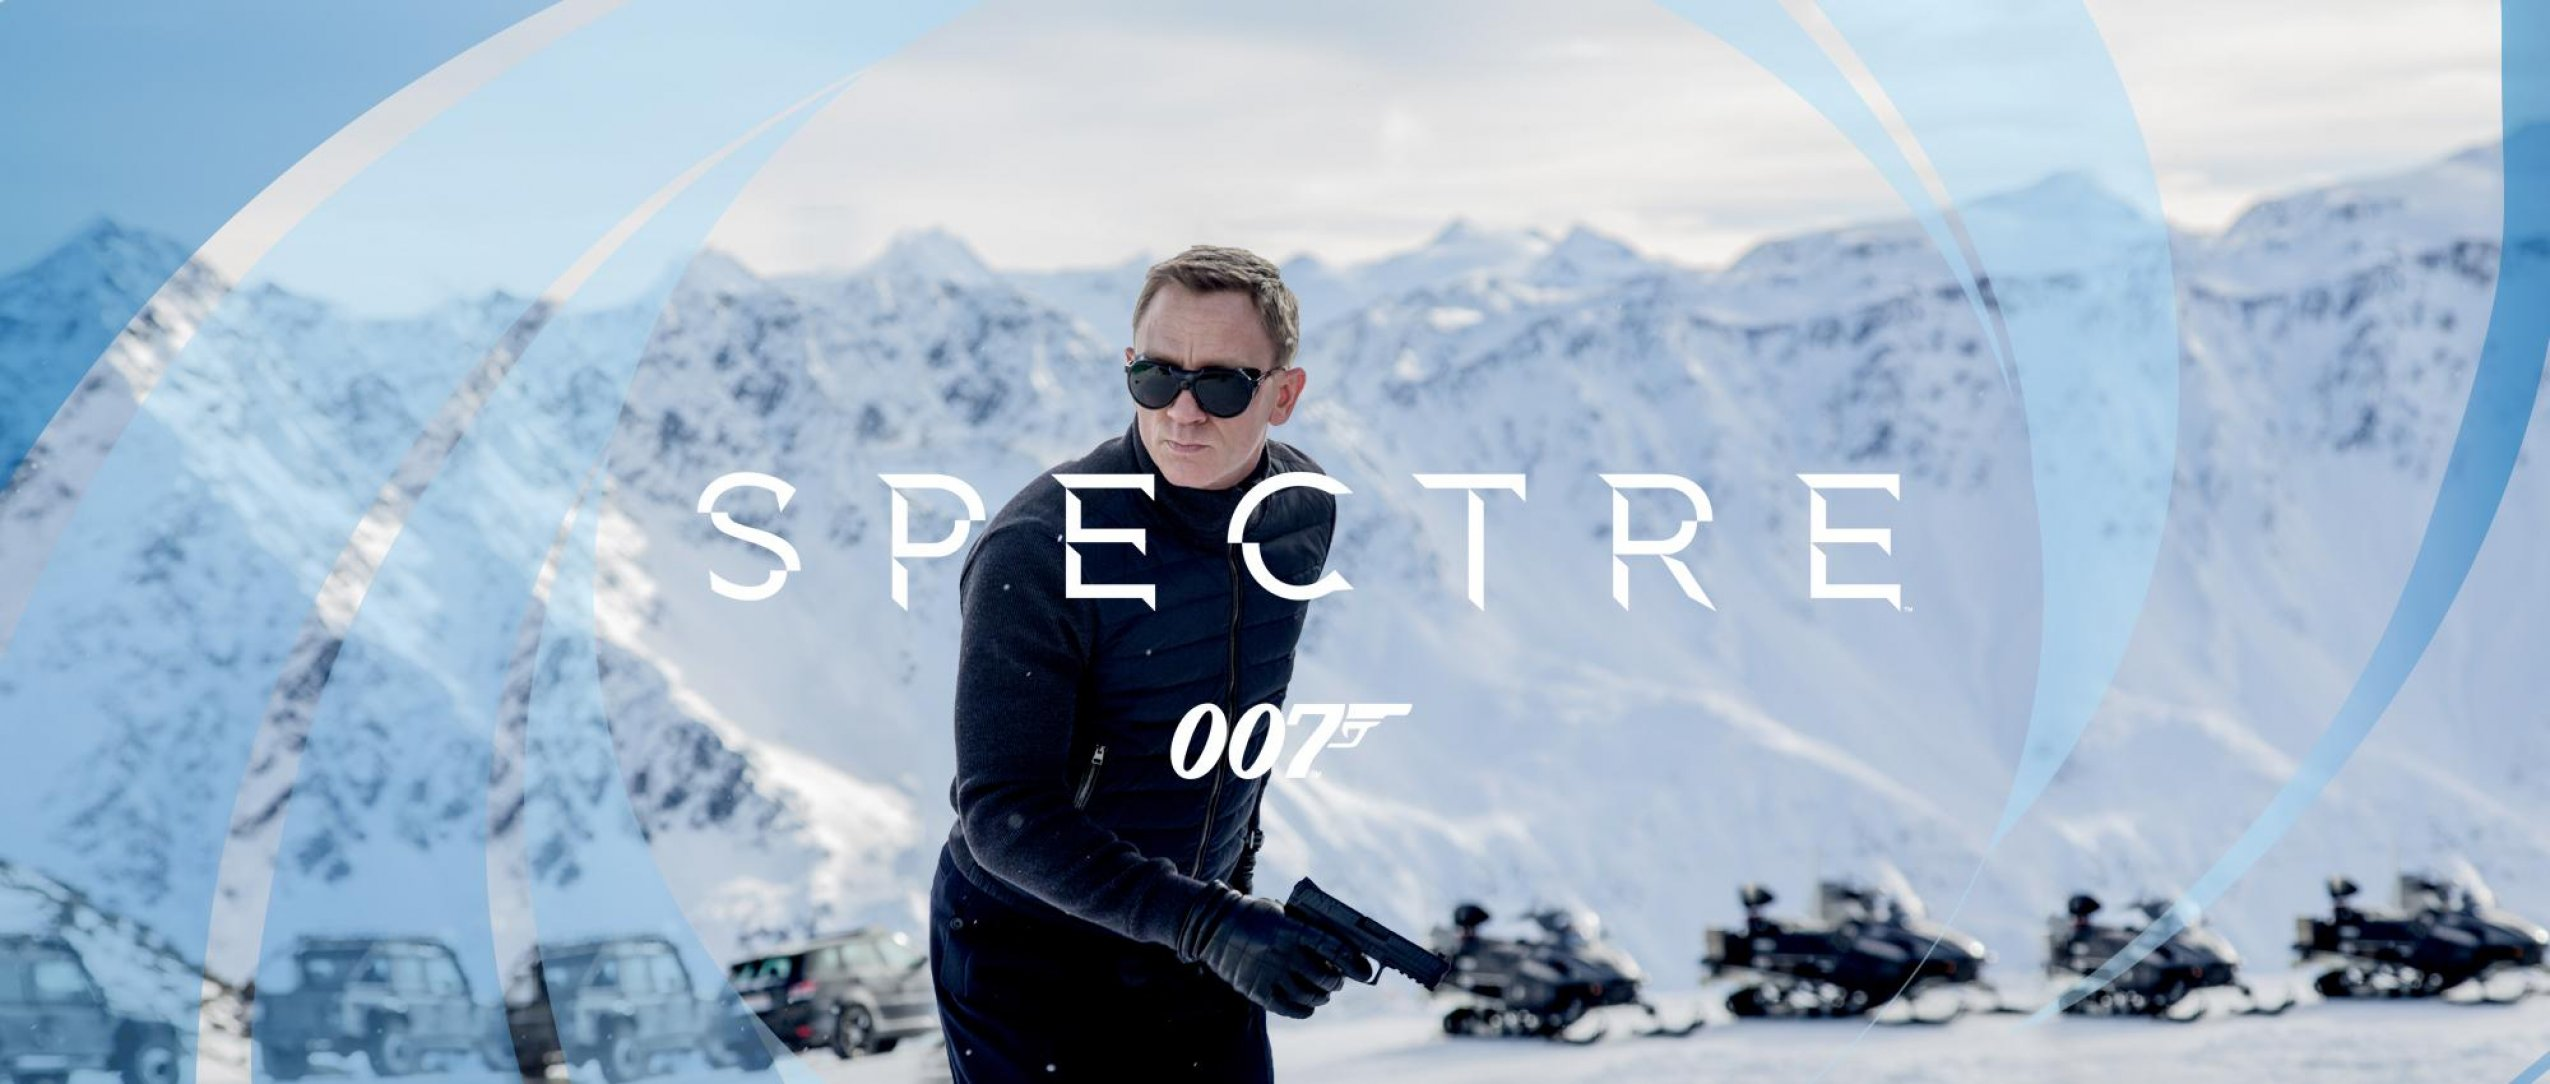 Offizieller James Bond Trailer